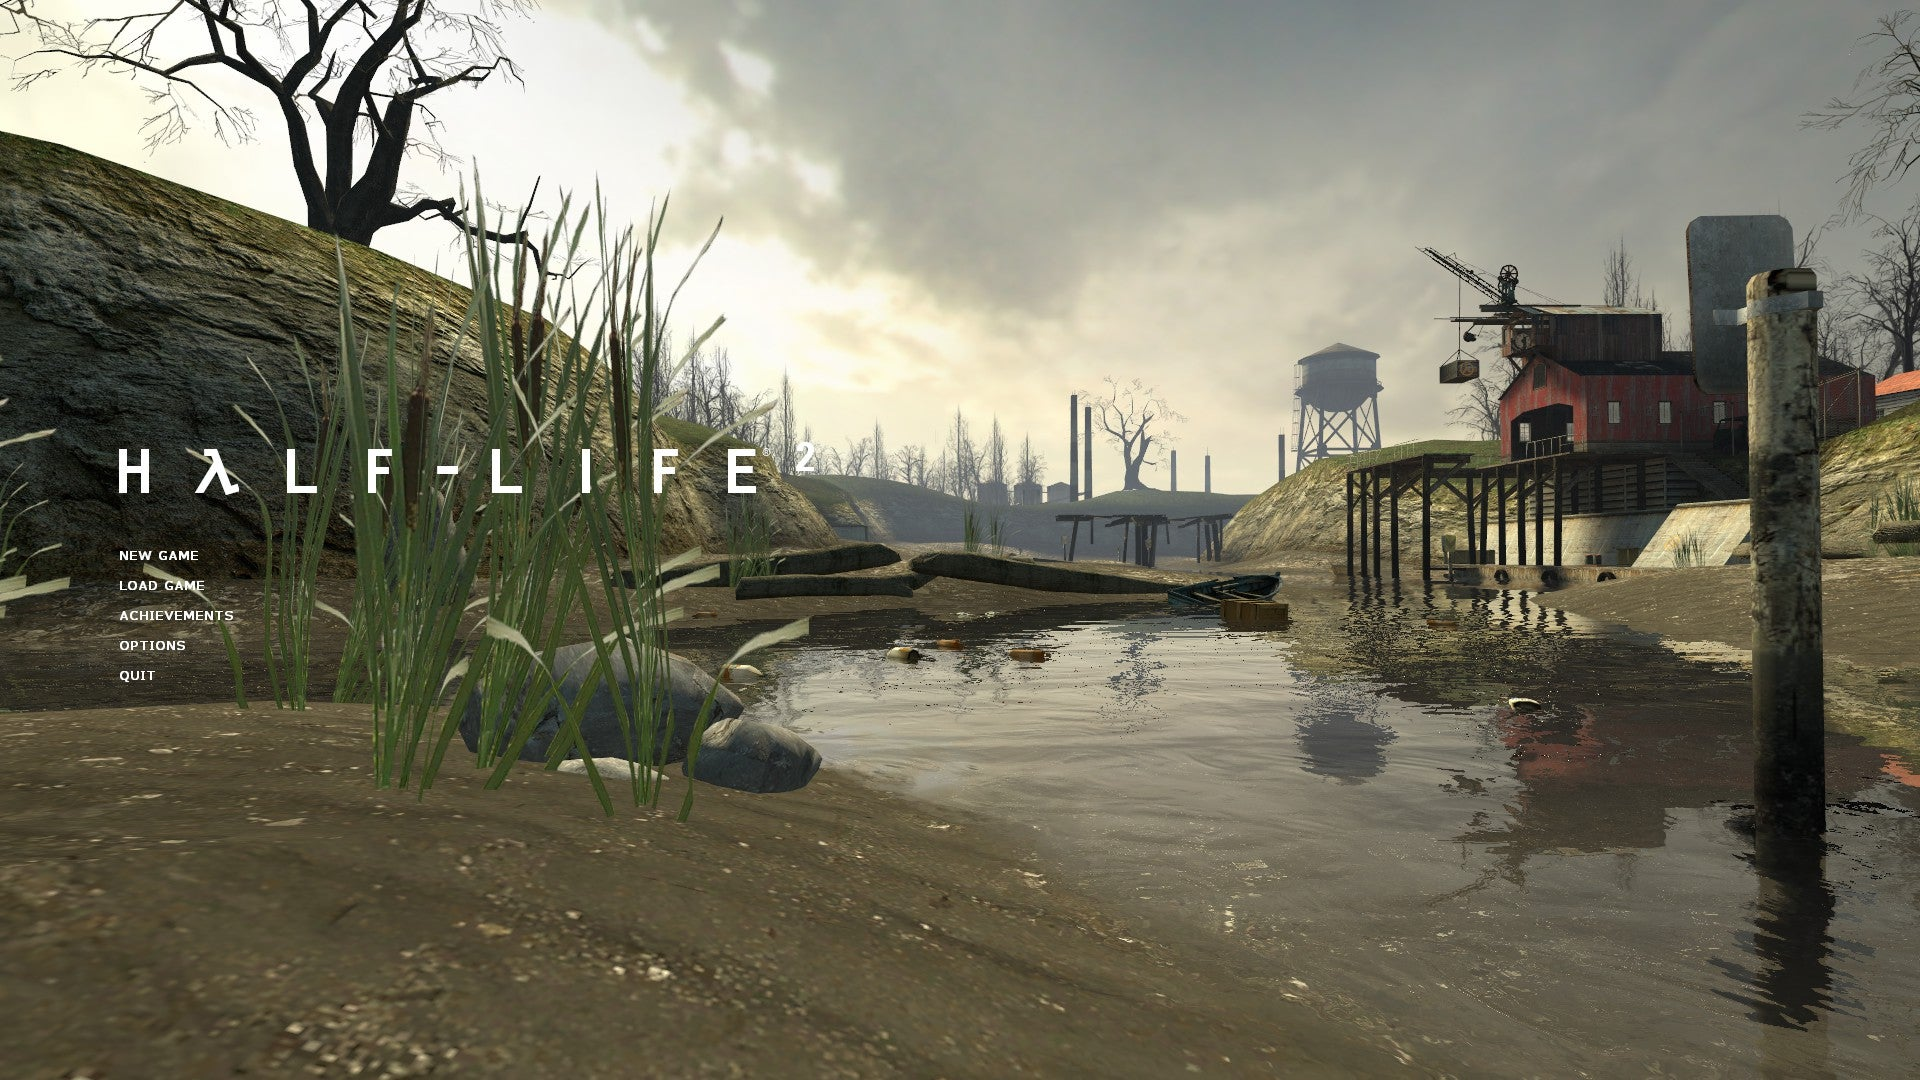 Why You Will Never See Half-Life 3